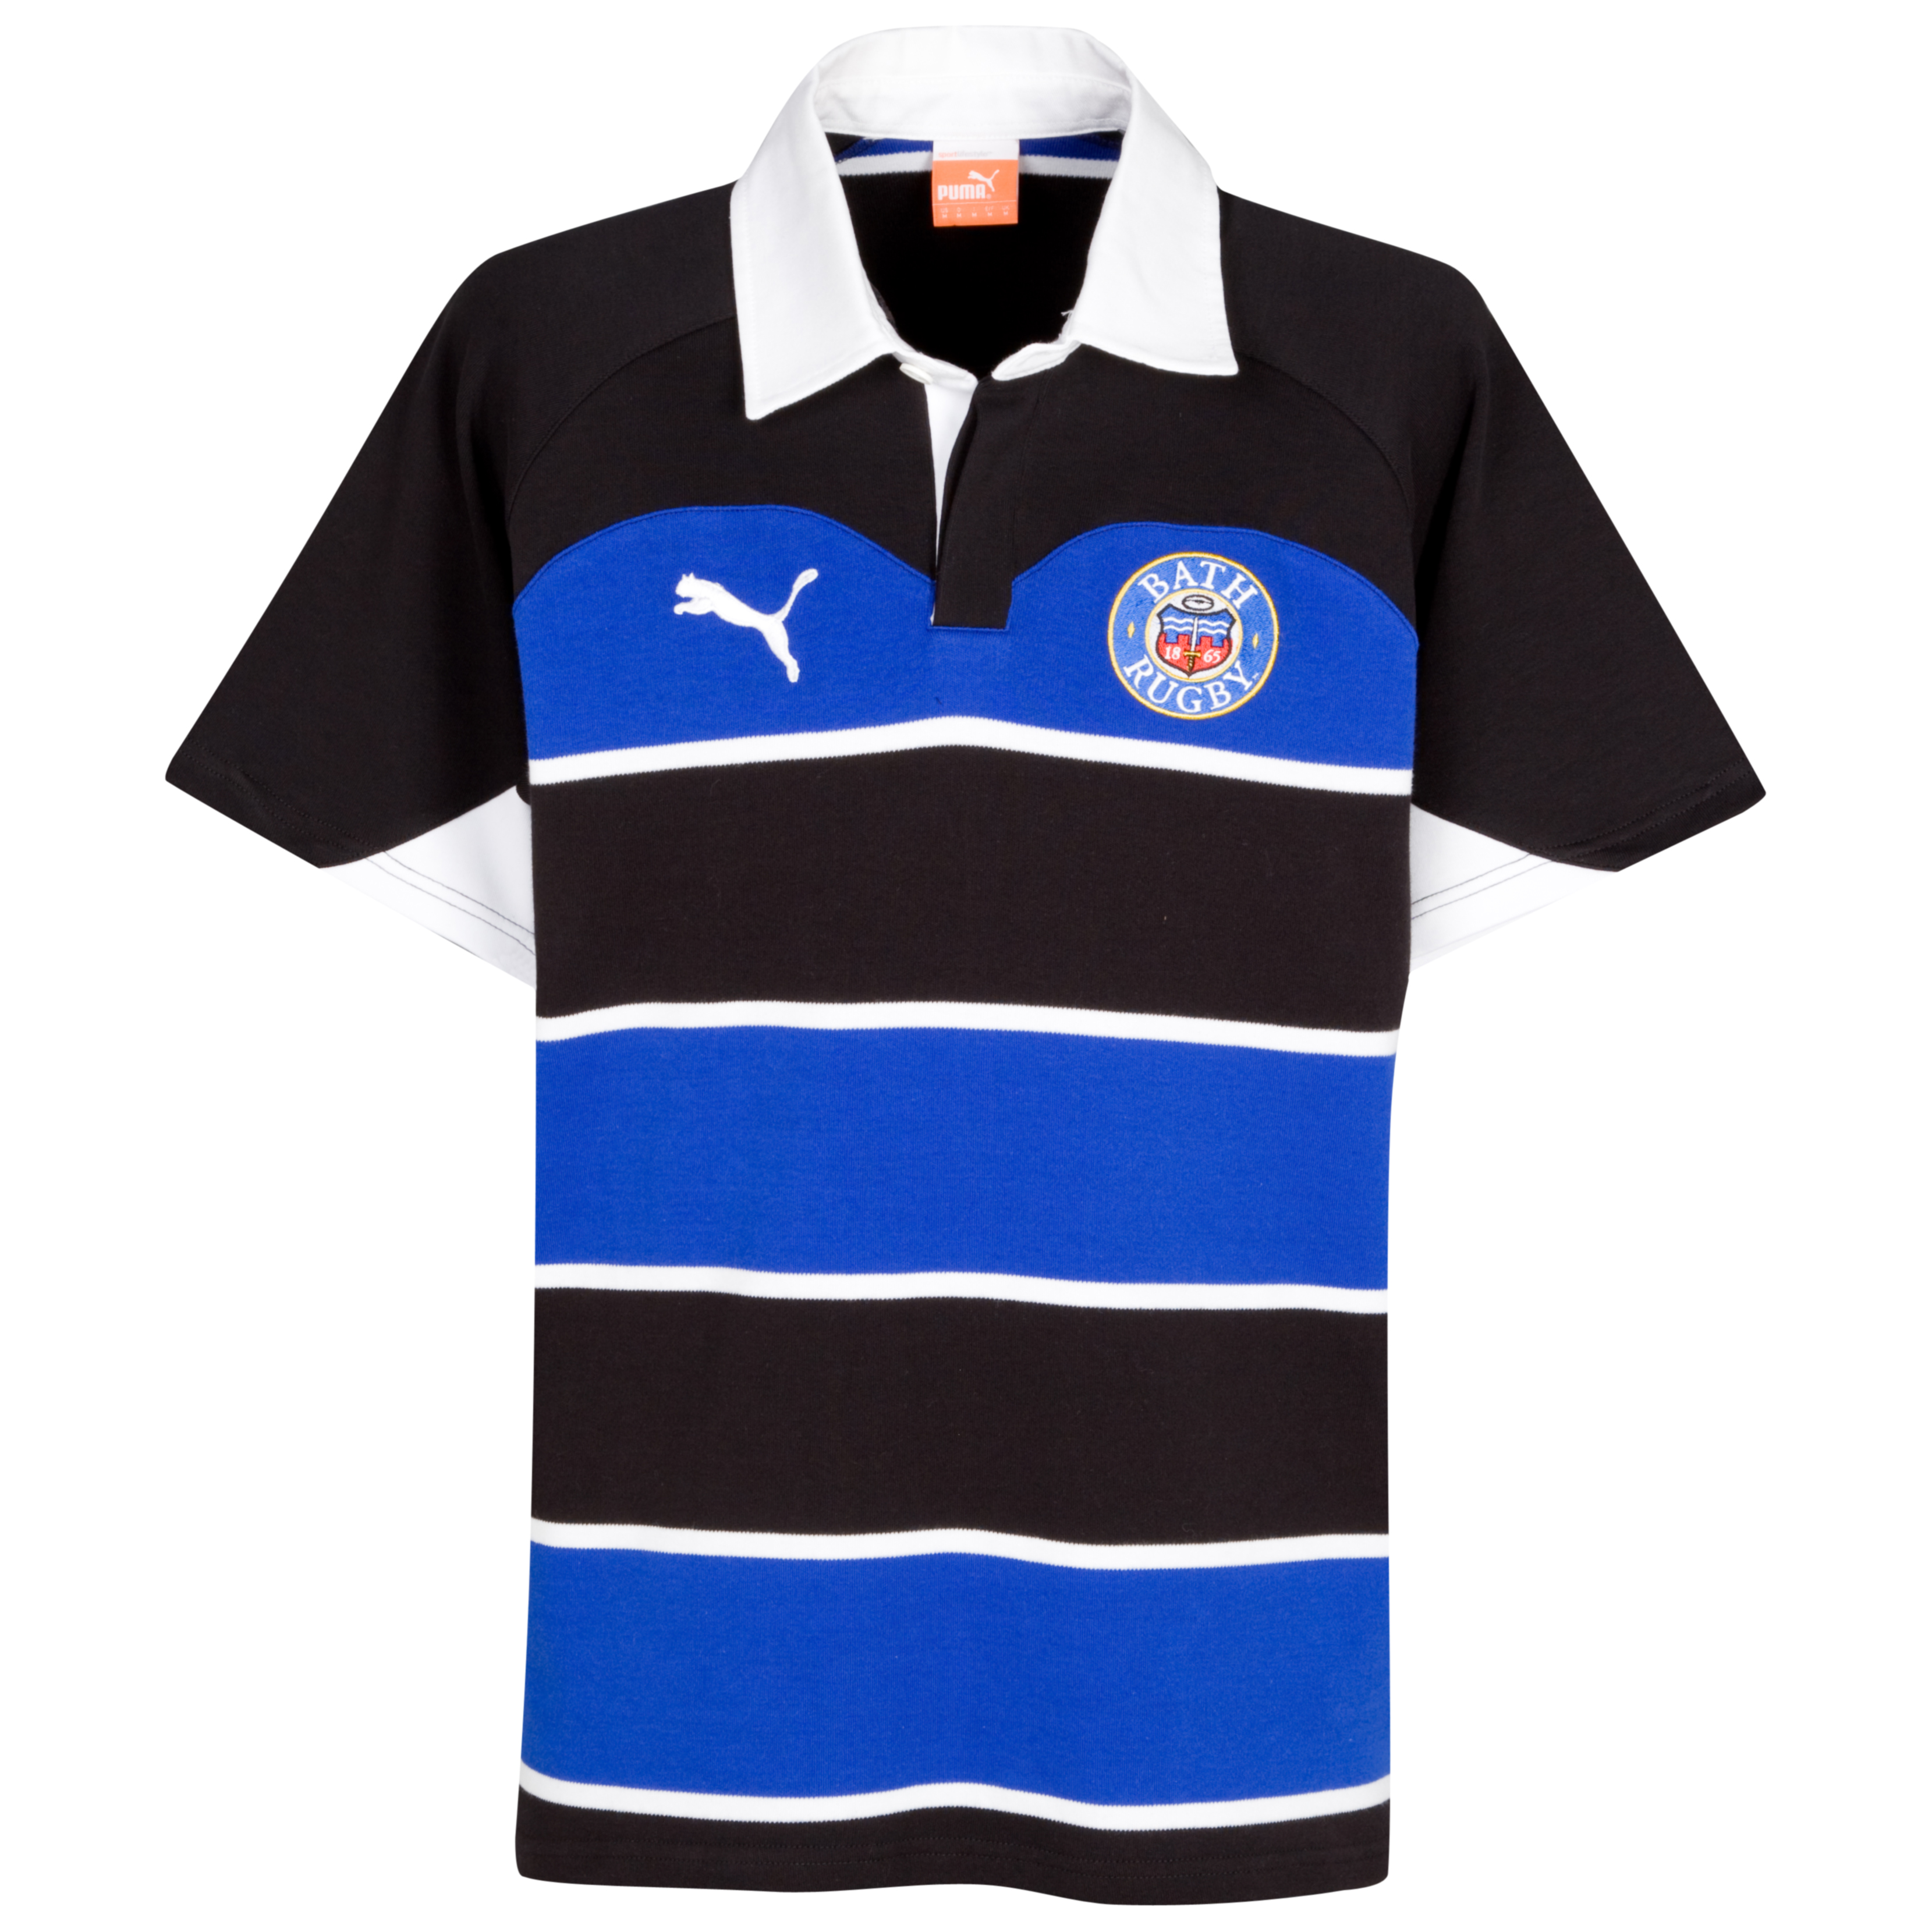 Bath Home Rugby Shirt 2010/12